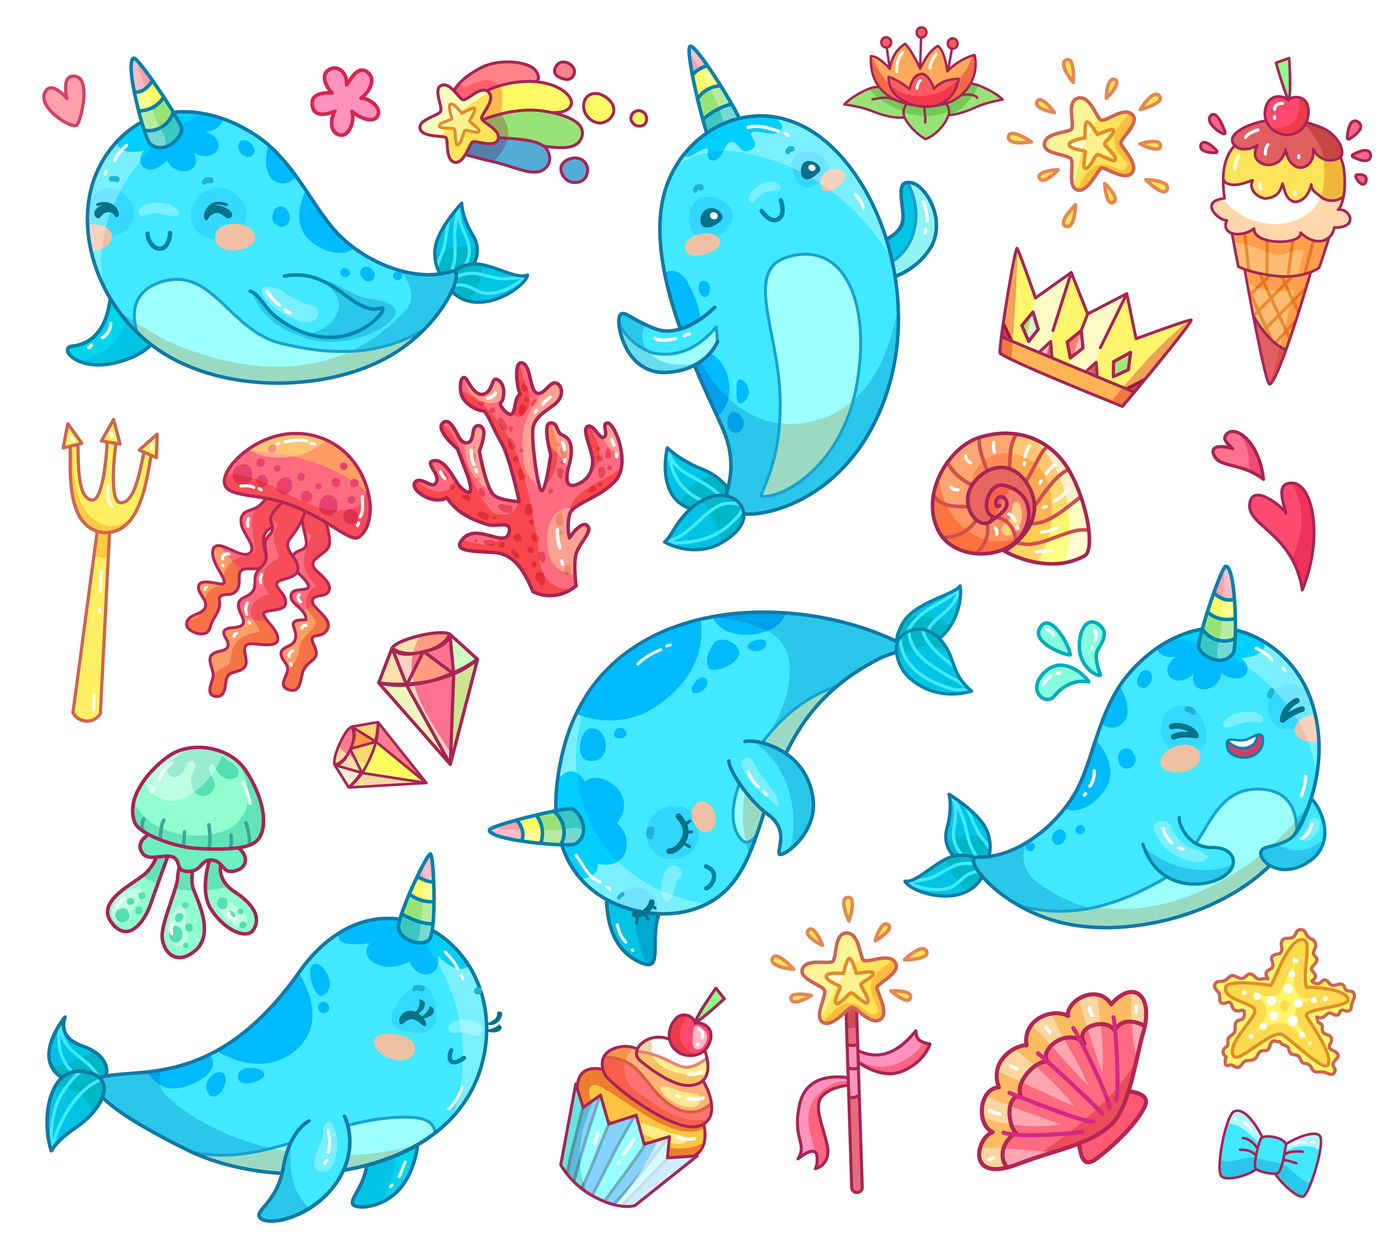 Marine Kawaii Baby Unicorn Narwhal Swimming Blue Funny Anime